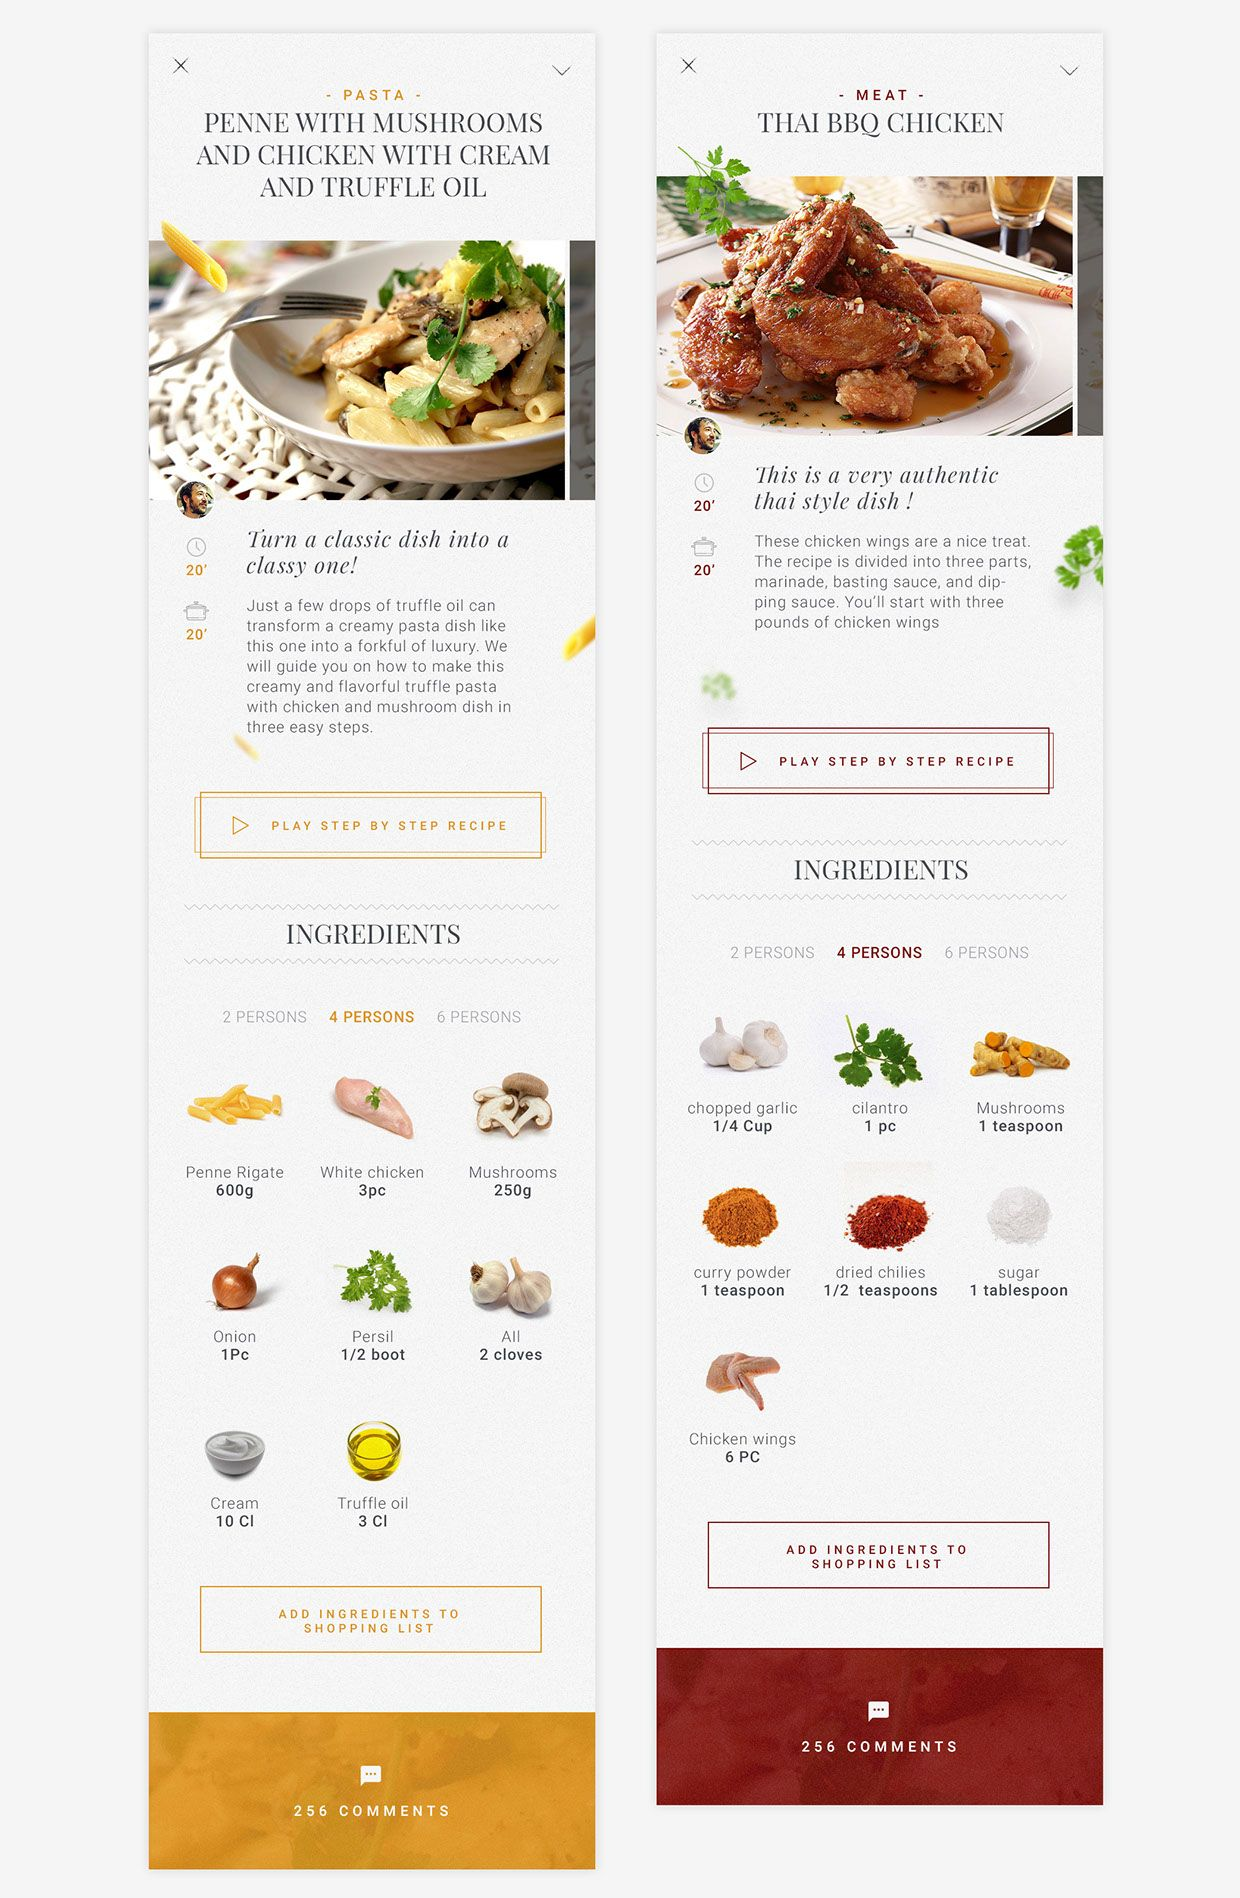 Free cooking recipe app template on behance fruitage pinterest miam is a free ios ui kit for your cooking appsthis is a useful ui kit for cooking recipe mobile apps with 17 fully editable and customisable screens forumfinder Choice Image